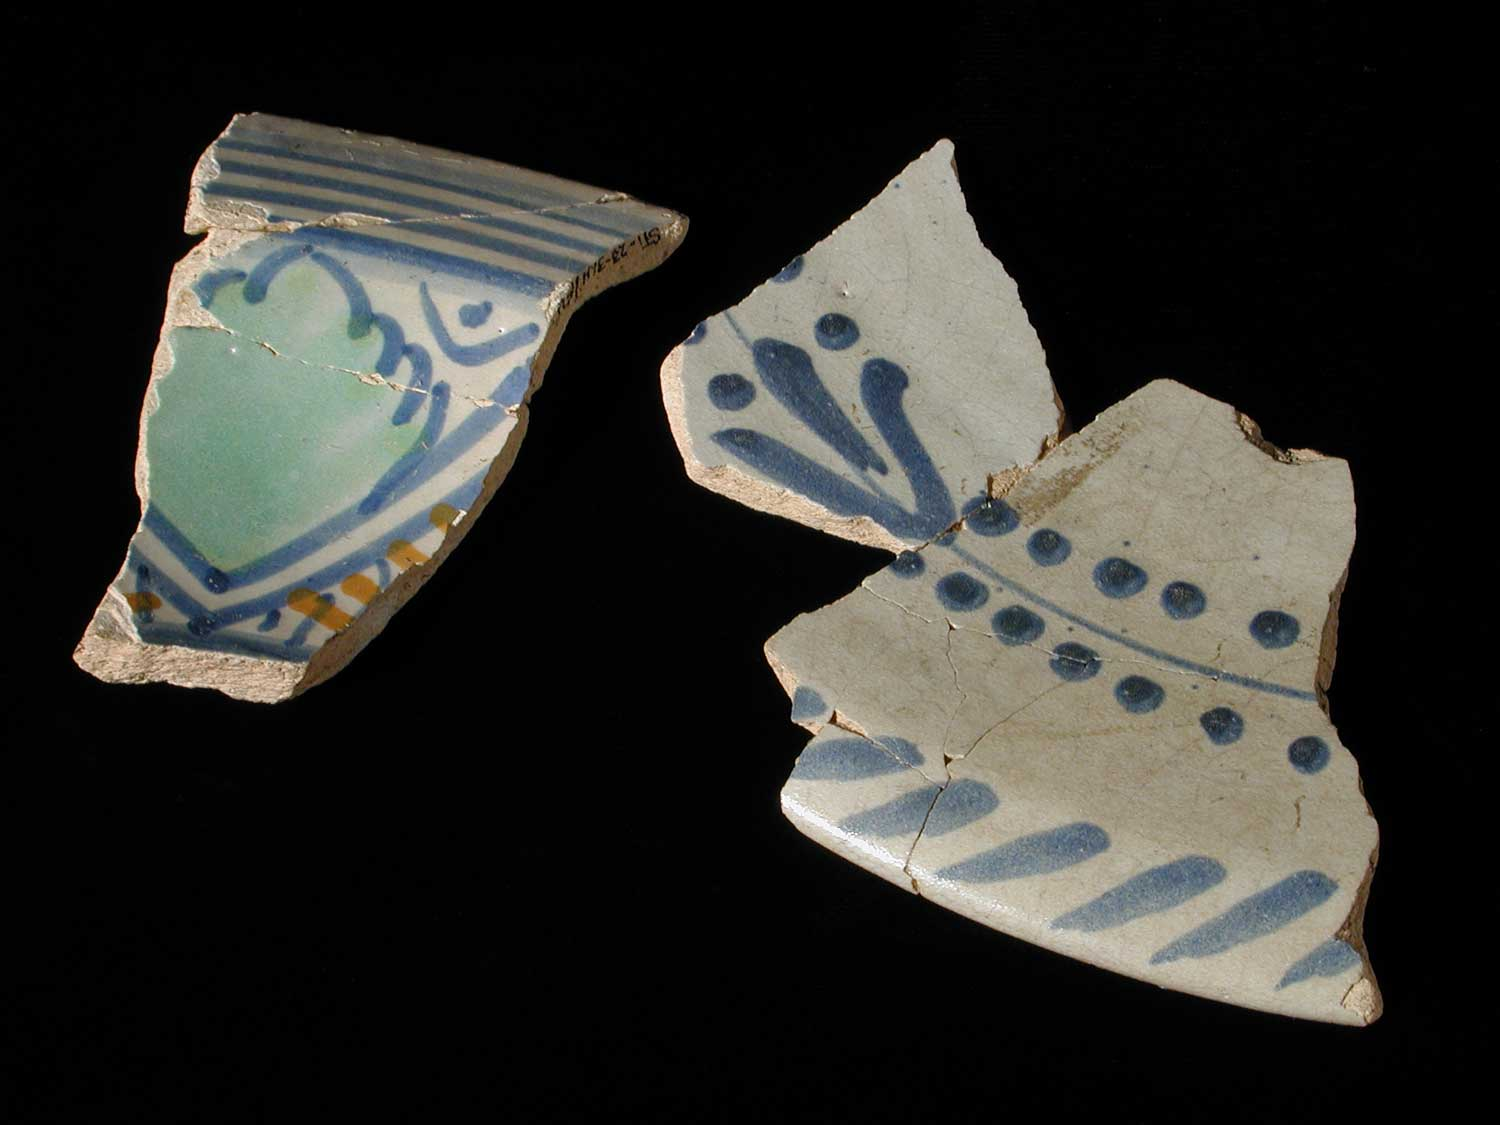 Tin-glazed earthenware sherds from the St. John's site